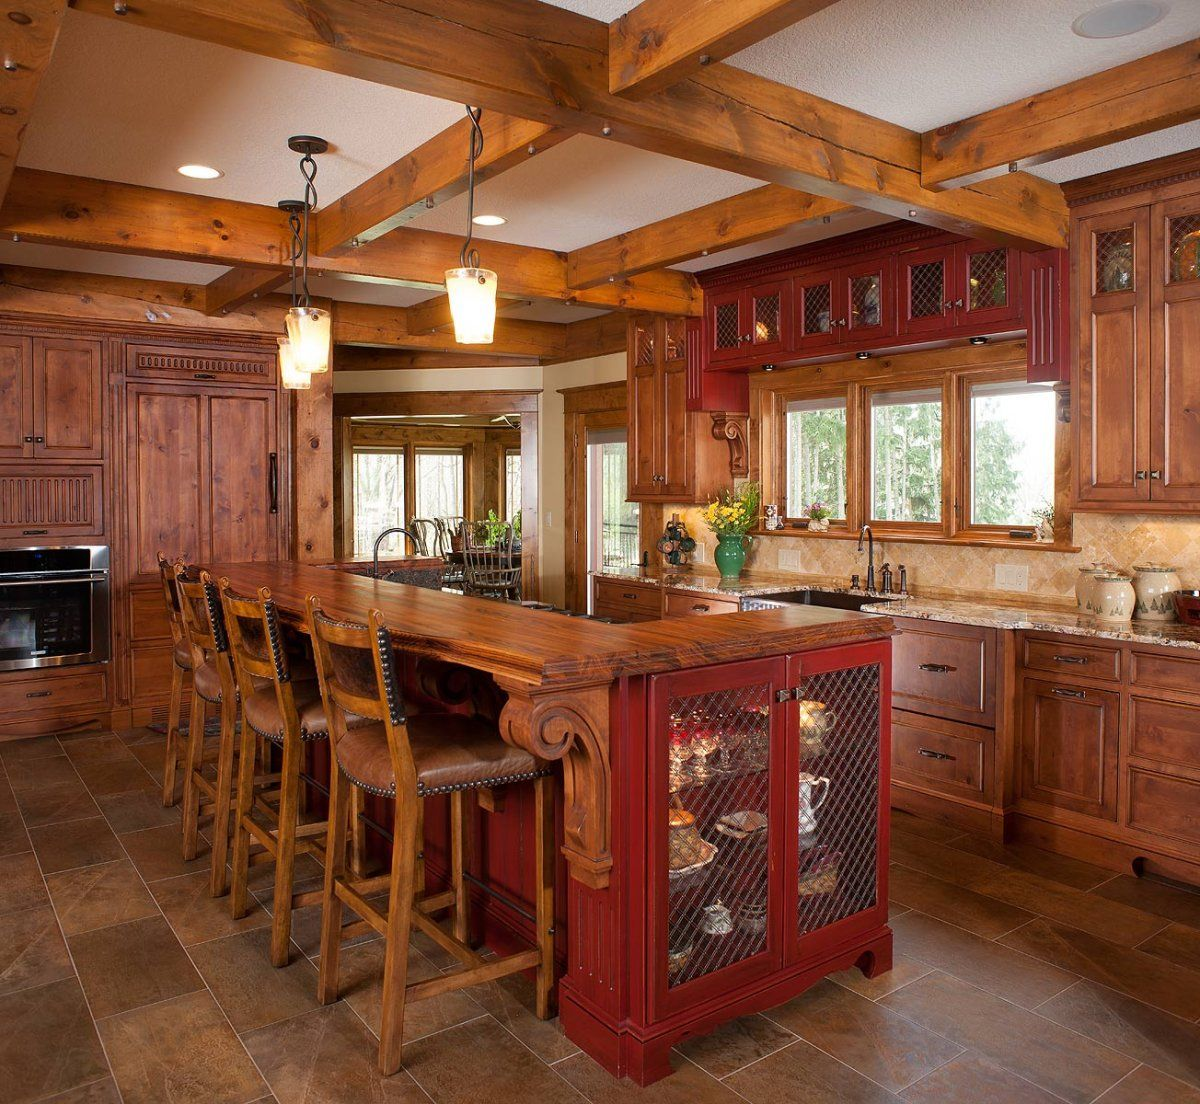 Charming Rustic Kitchen Ideas And Inspirations: Rustic Kitchen Design With Inexpensive Red Wood Kitchen